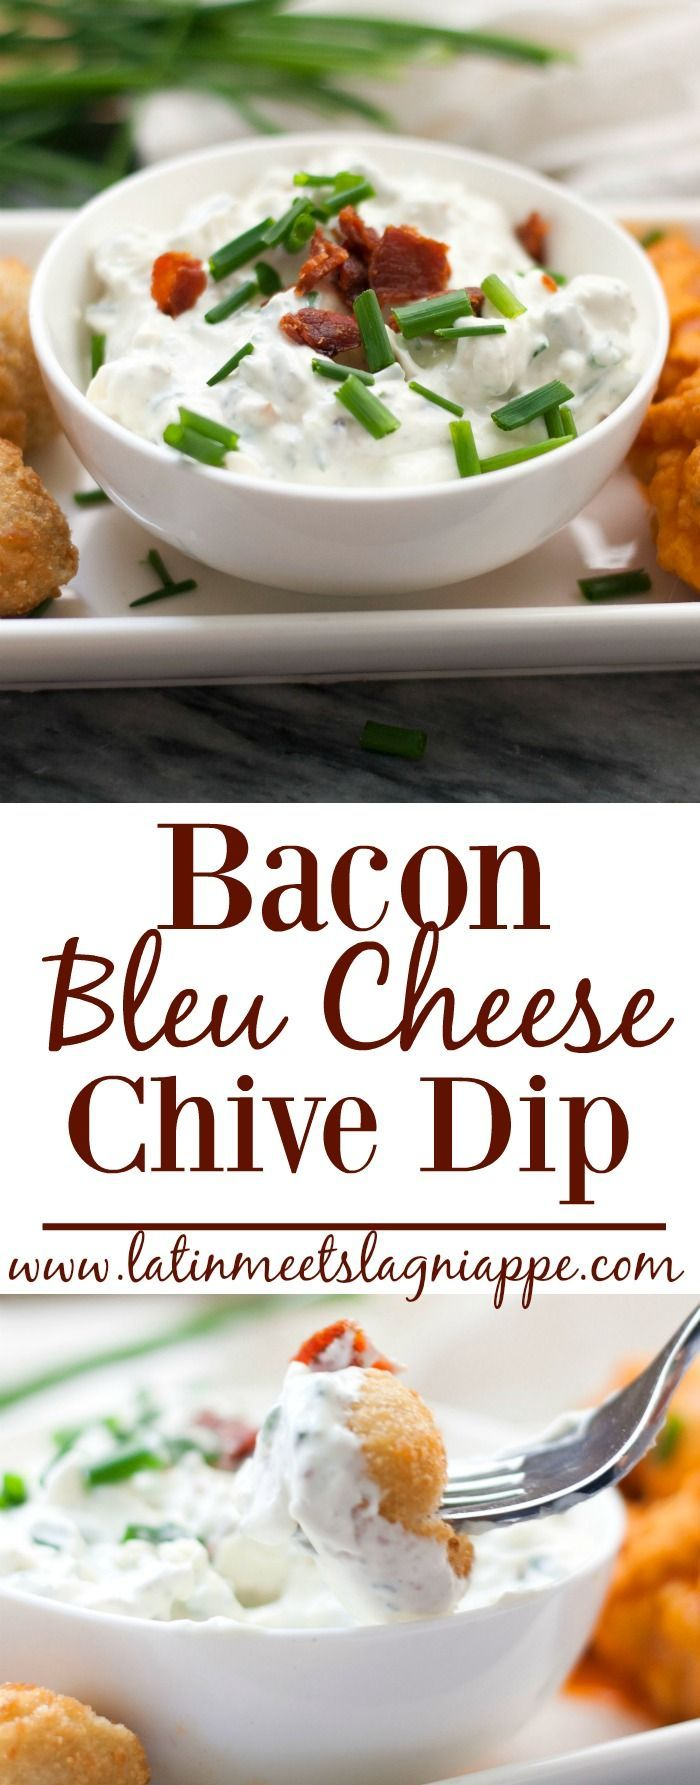 This tasty Bacon Bleu Cheese Chive Dip is a simple and delicious snack! #ad #20MinutesToTasty /farmrichsnacks/ /walmart/